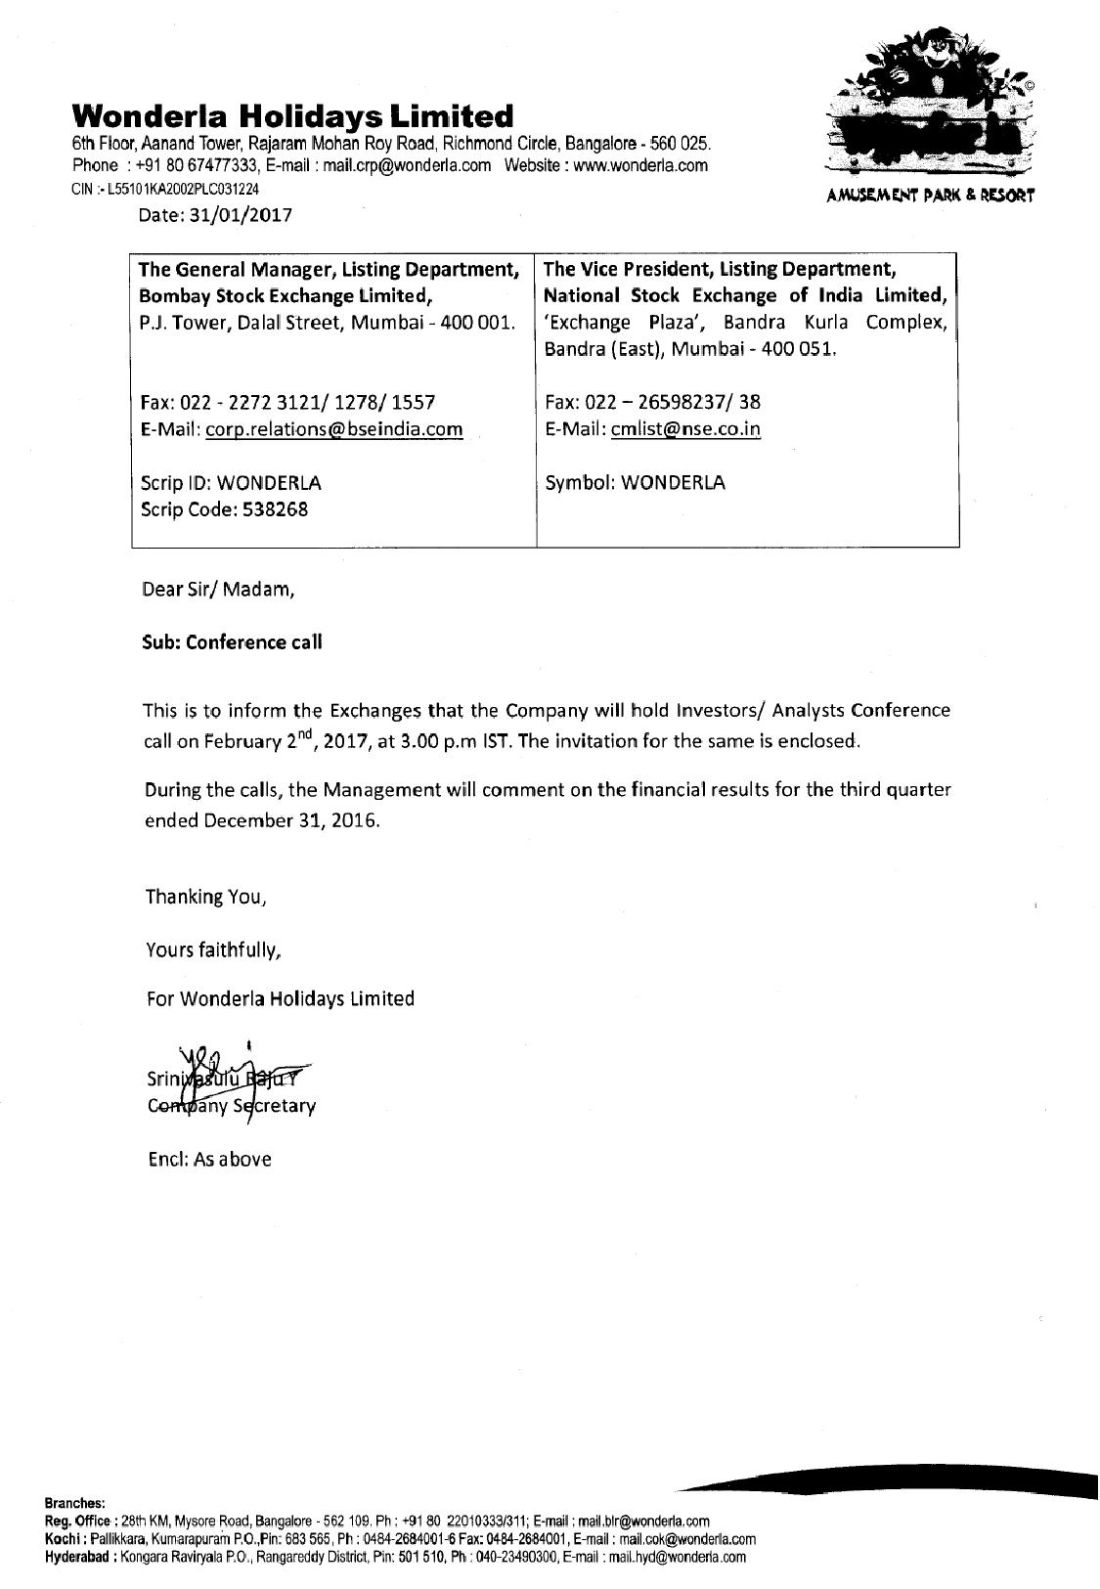 Wonderla Amusement Parks & Resort  Conference Call Notice-page-001